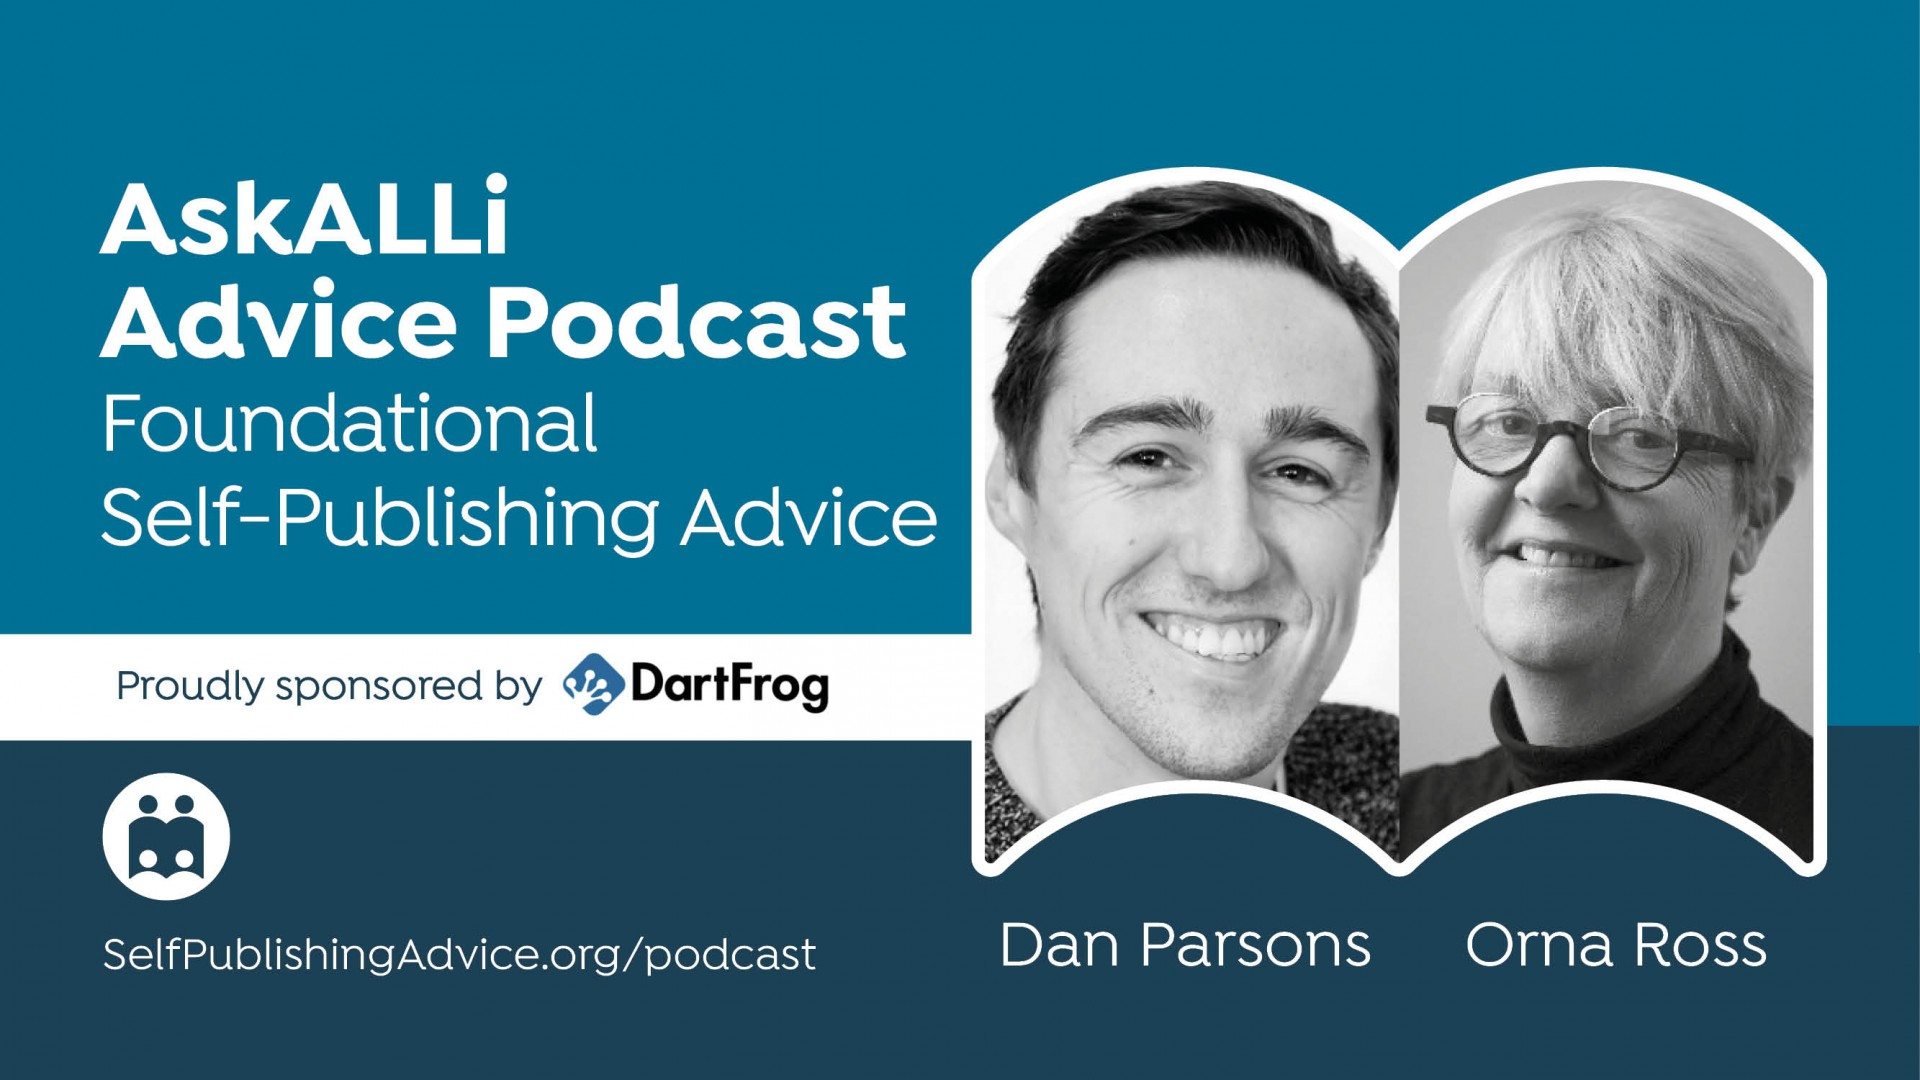 PODCAST: Pre-Order Tactics To Grow Your Author Business